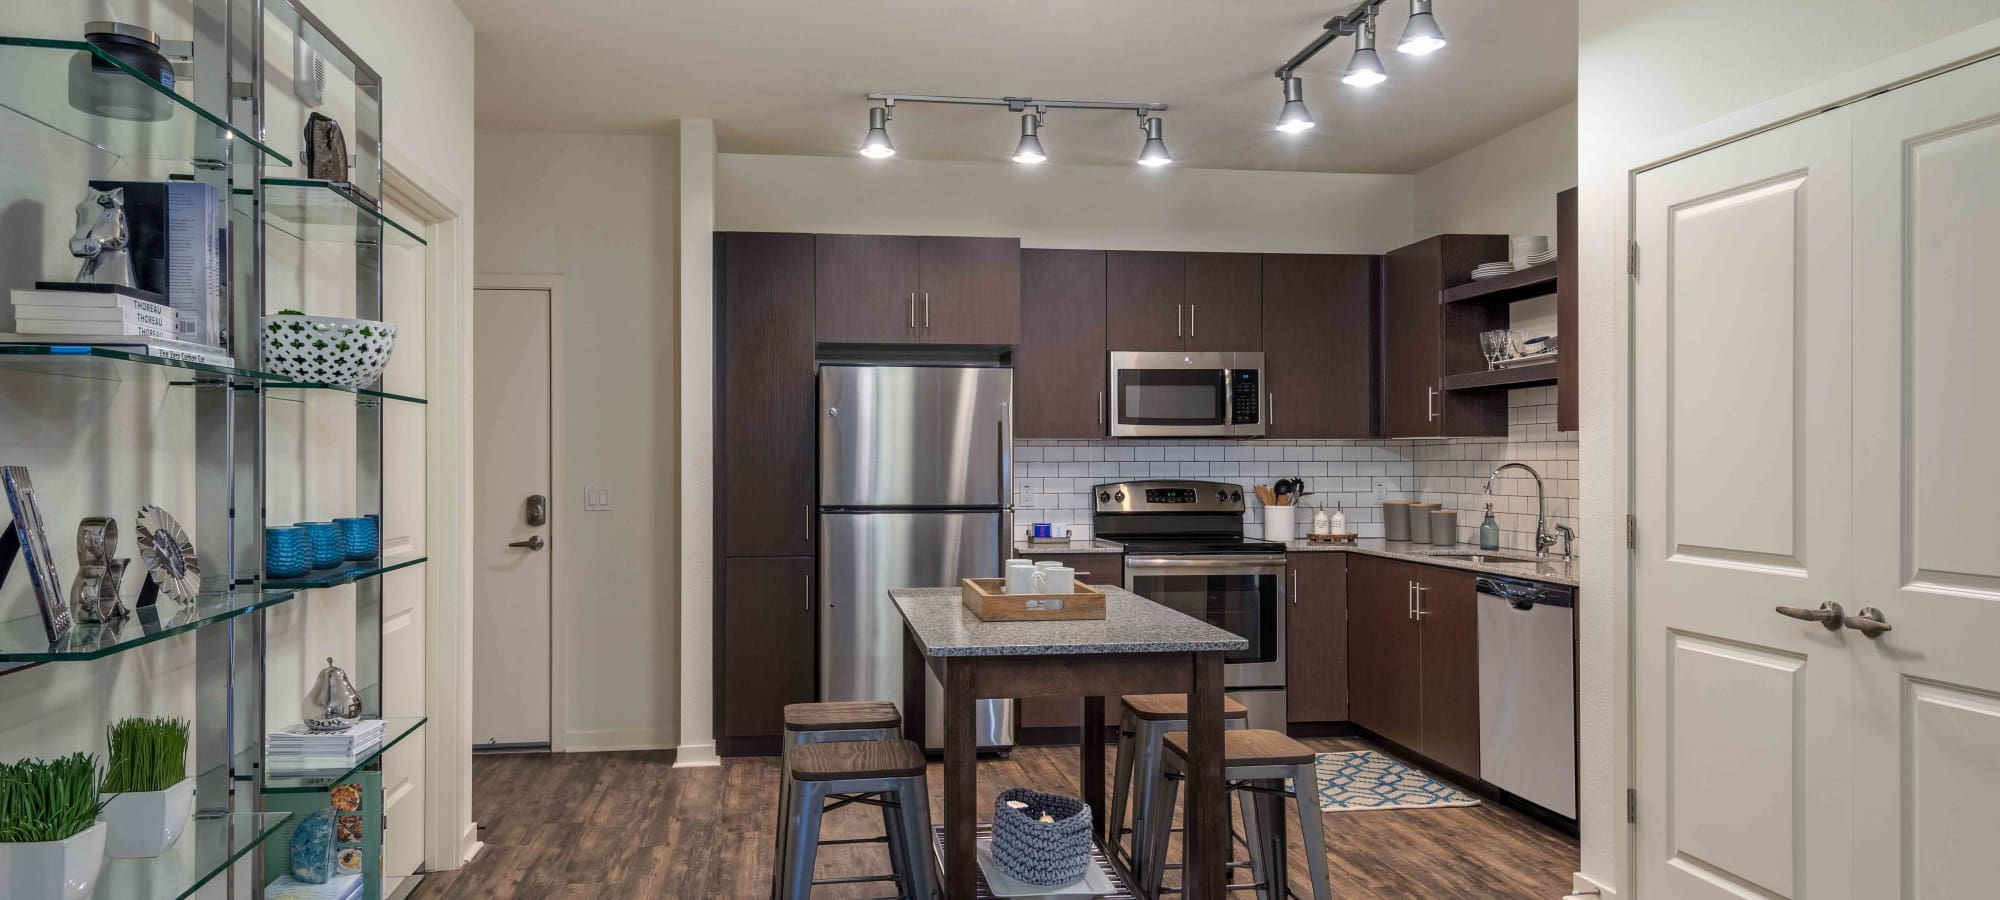 Dark wood cabinetry and hardwood floors in model home's kitchen at Capital Place in Phoenix, Arizona